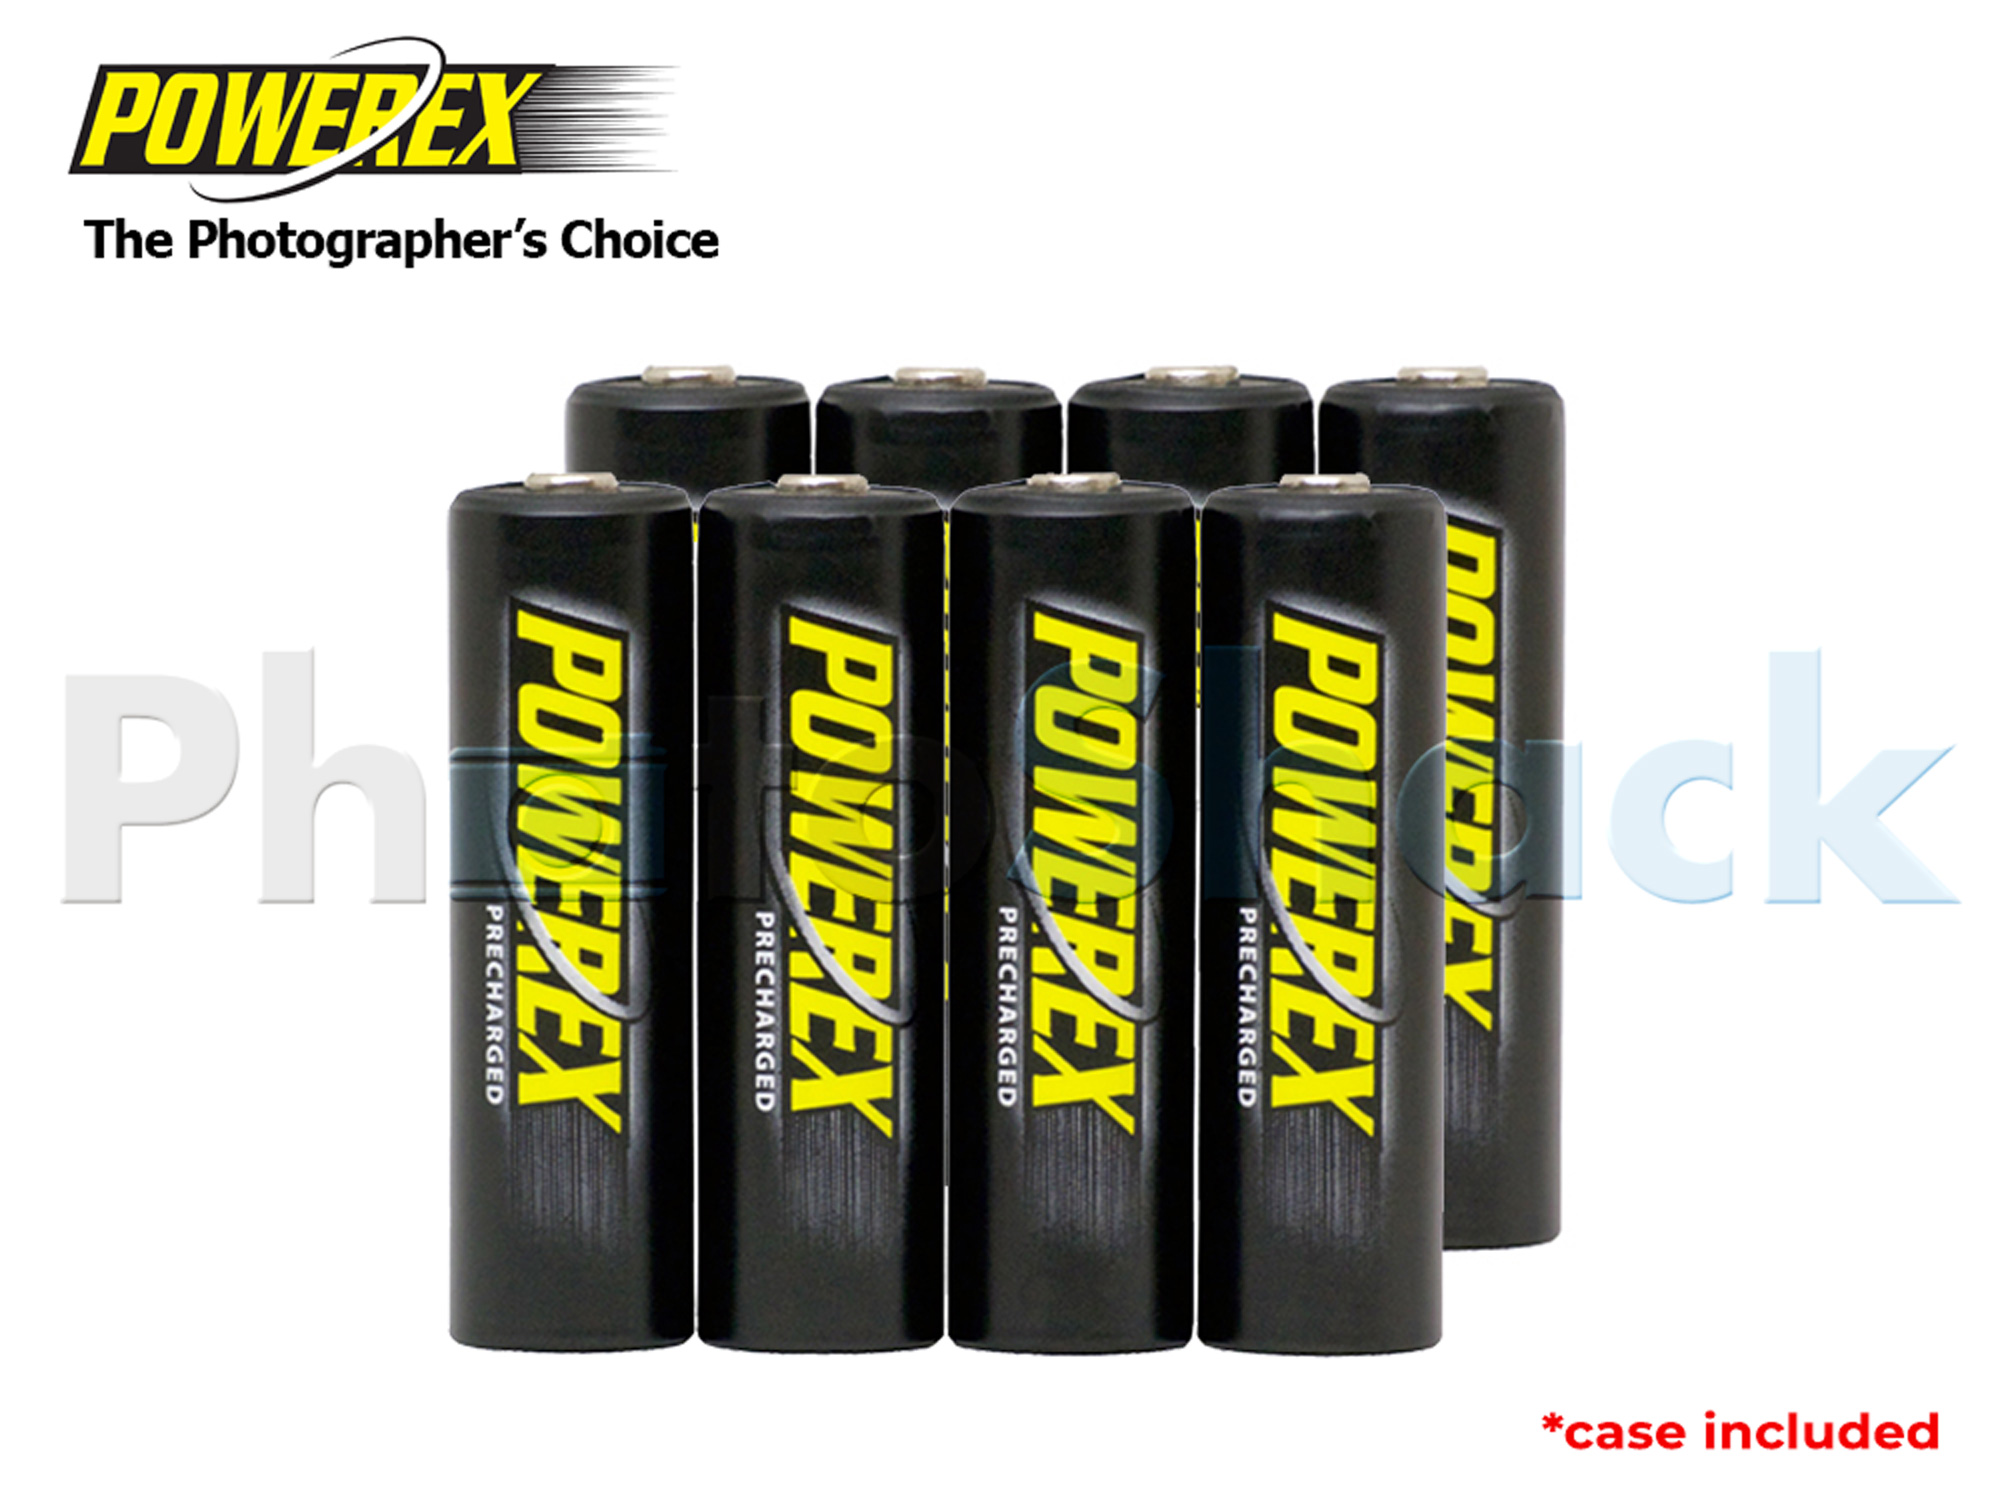 Maha Precharged AA Batteries - 2600mAh 8pack